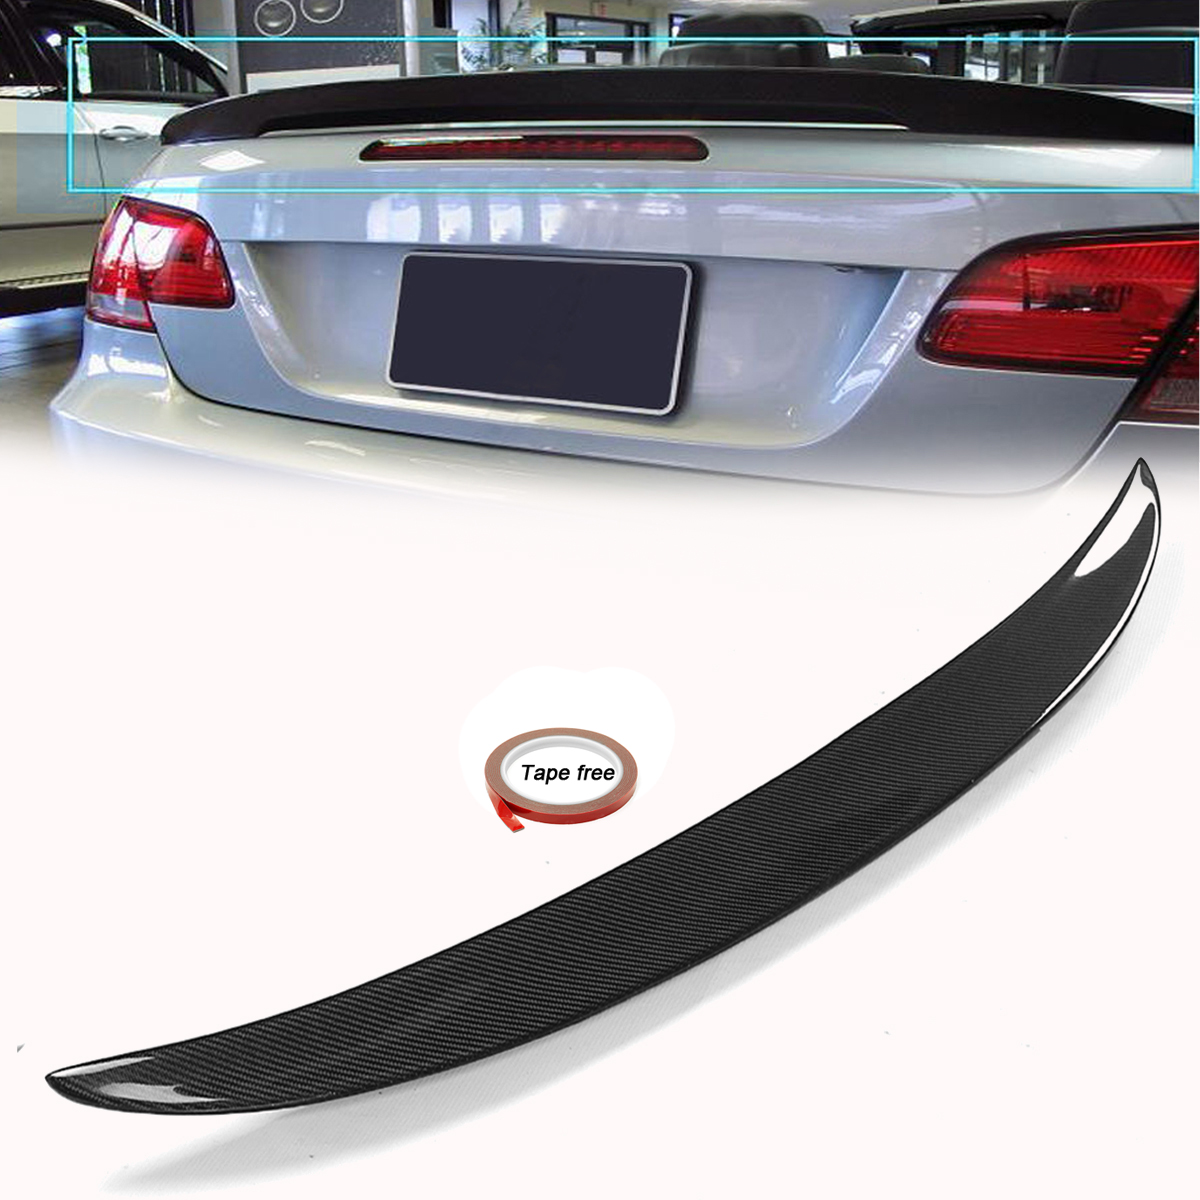 High quality Carbon Fiber Rear Wing Spoiler Tail Trunk Lid boot lip spoiler Wing for BMW E93 325i 328i 335i M3 2006 2013